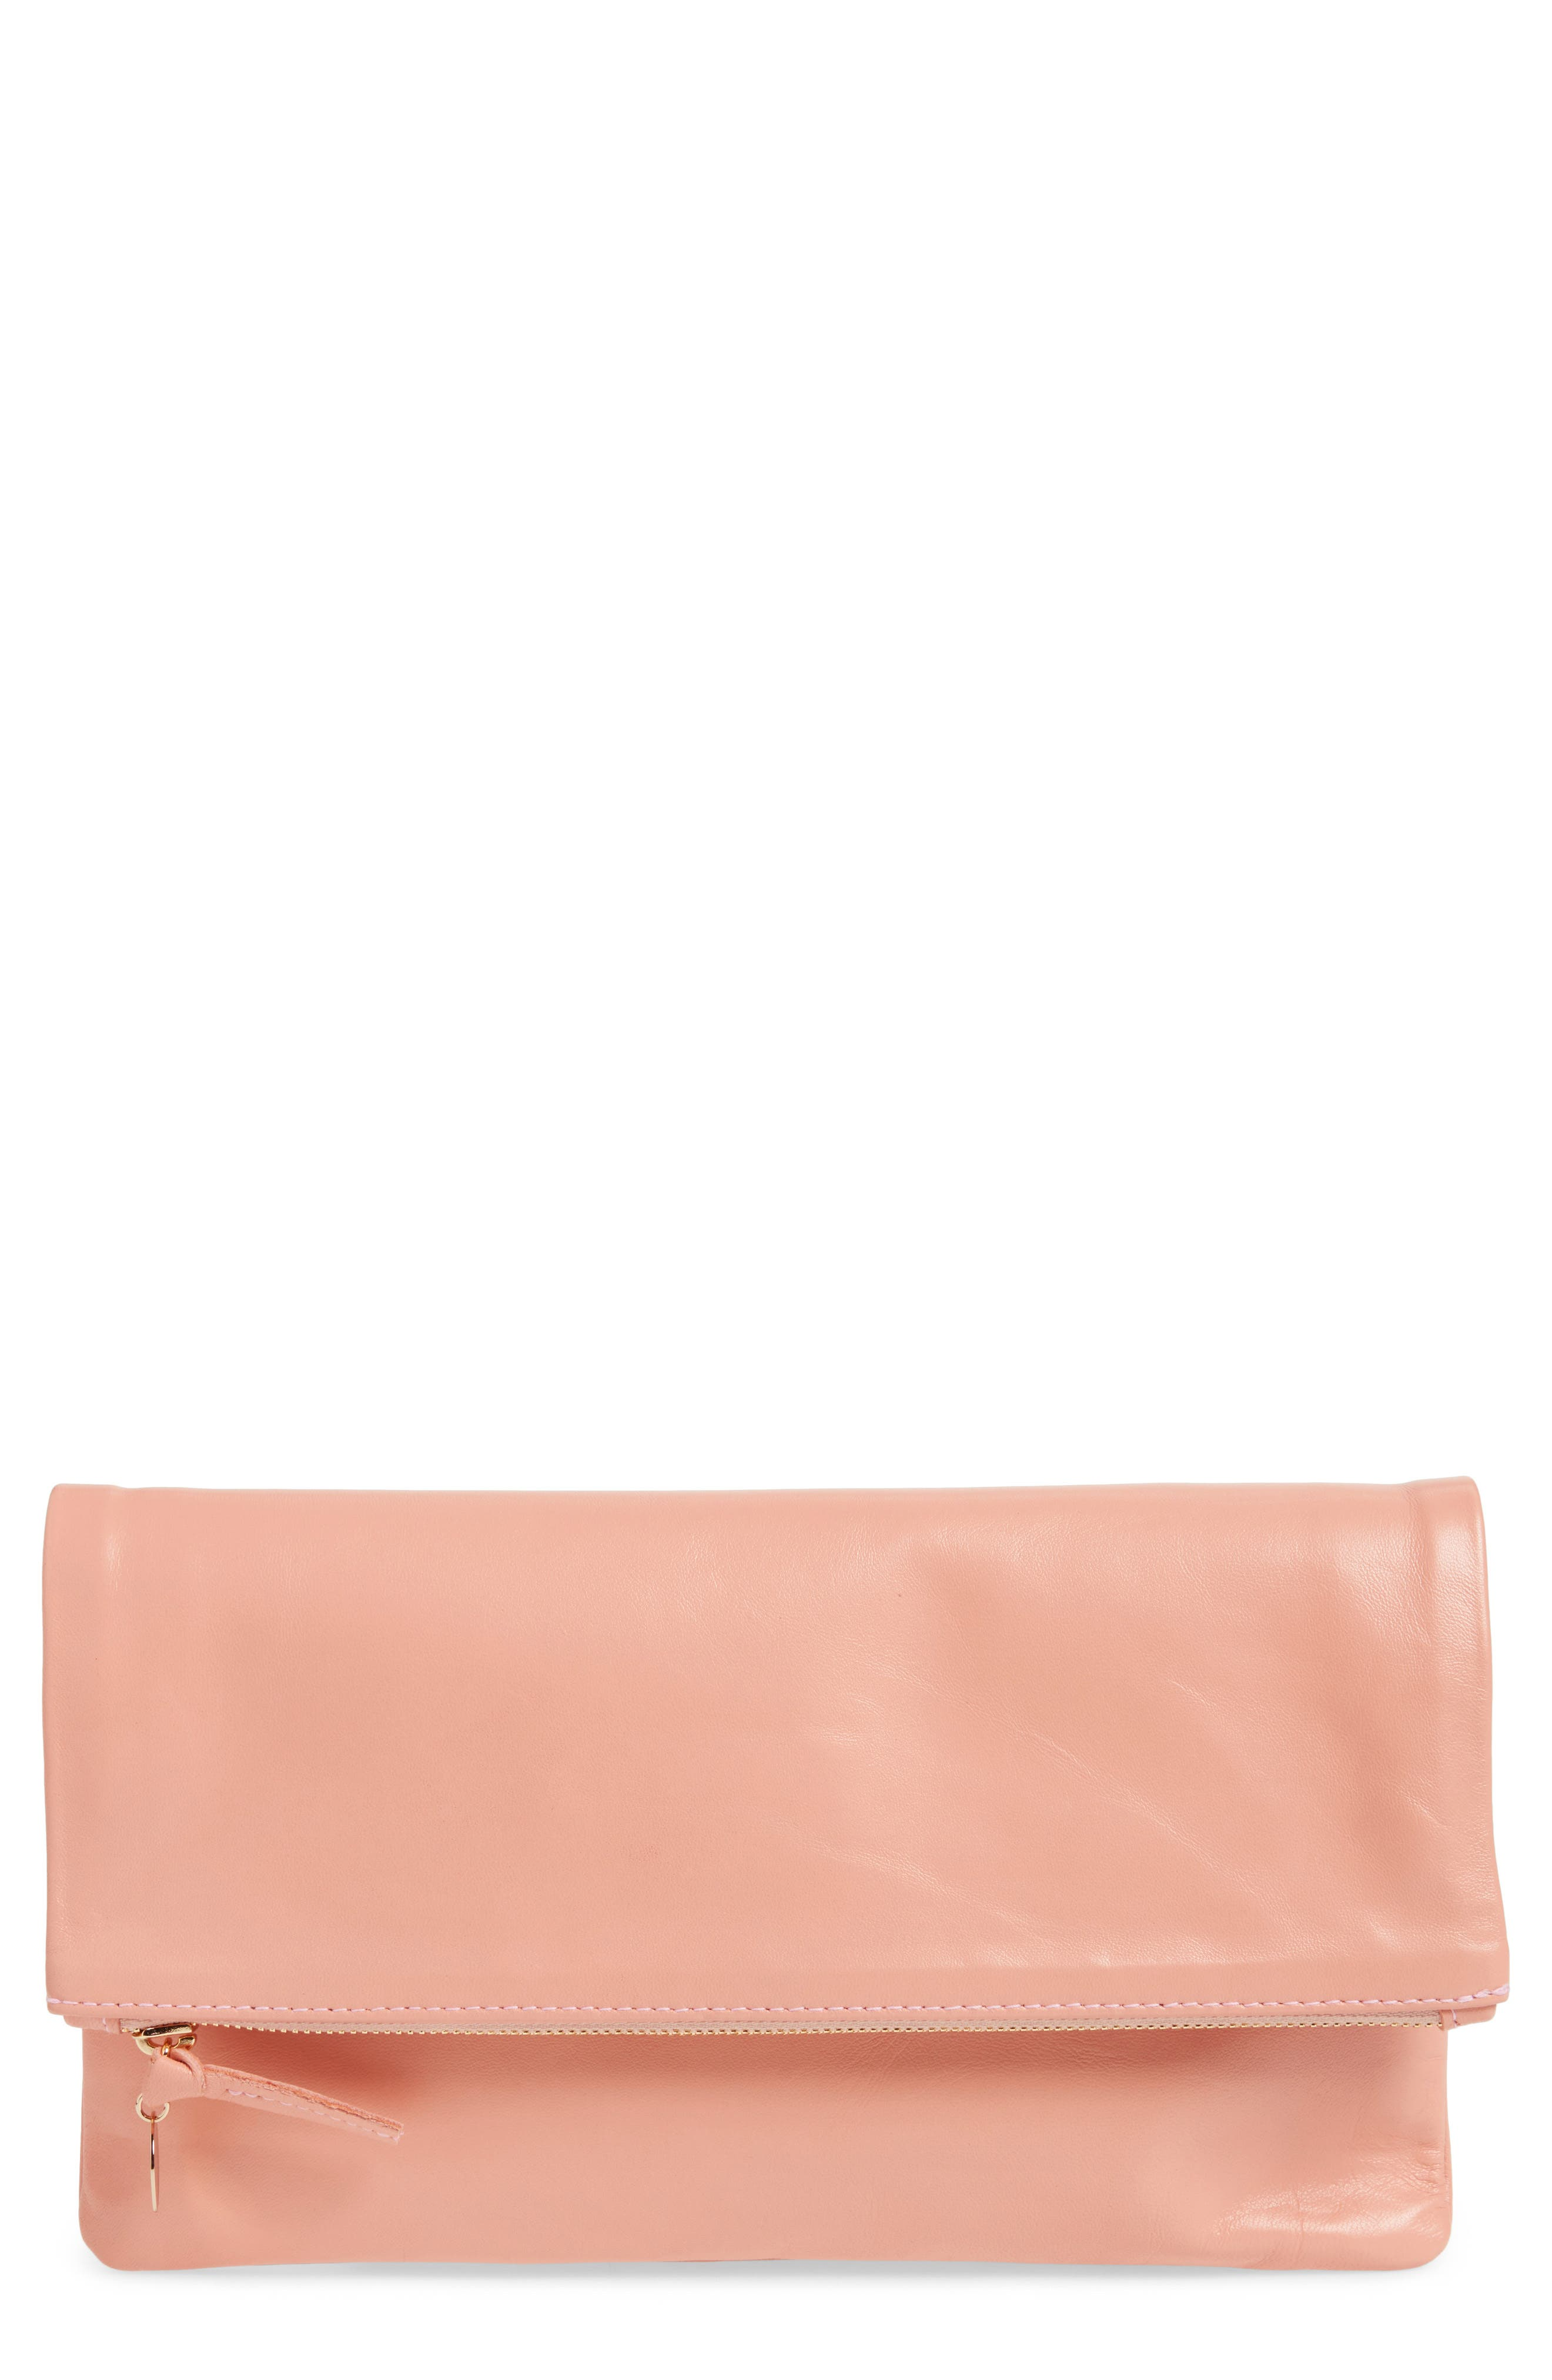 Leather Foldover Clutch,                             Main thumbnail 1, color,                             Blush Golfa